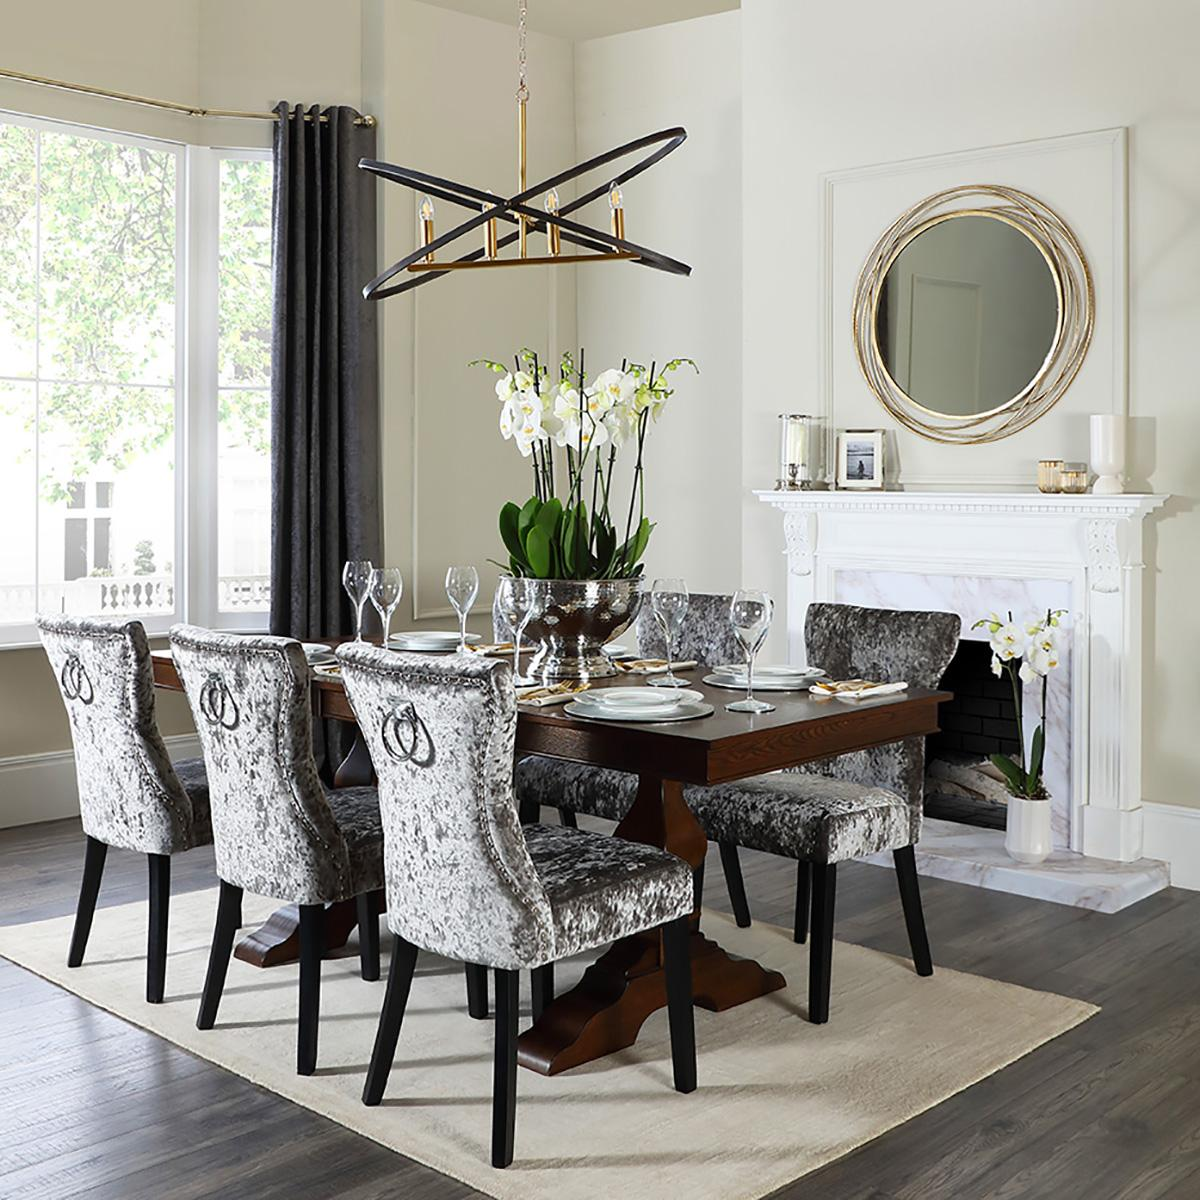 Cavendish Table and Kensington Chairs - Designer Living